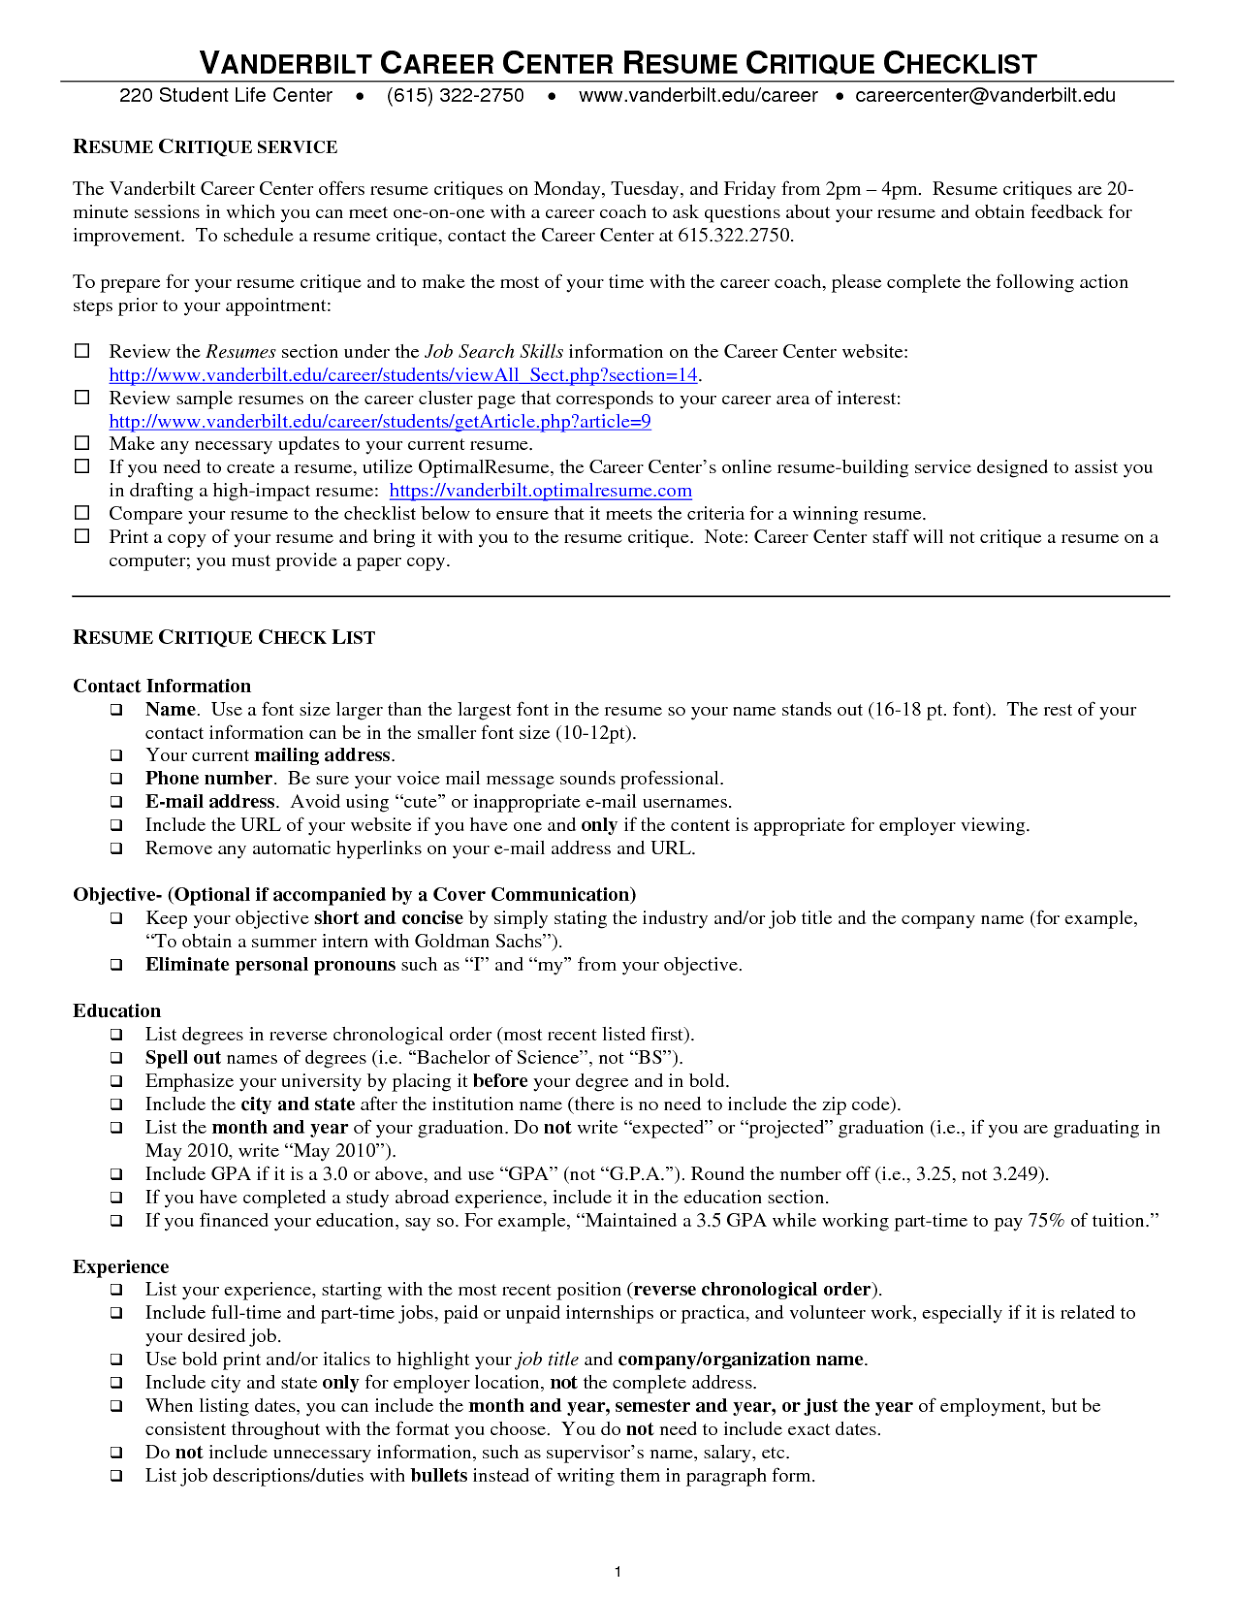 law school resume objective